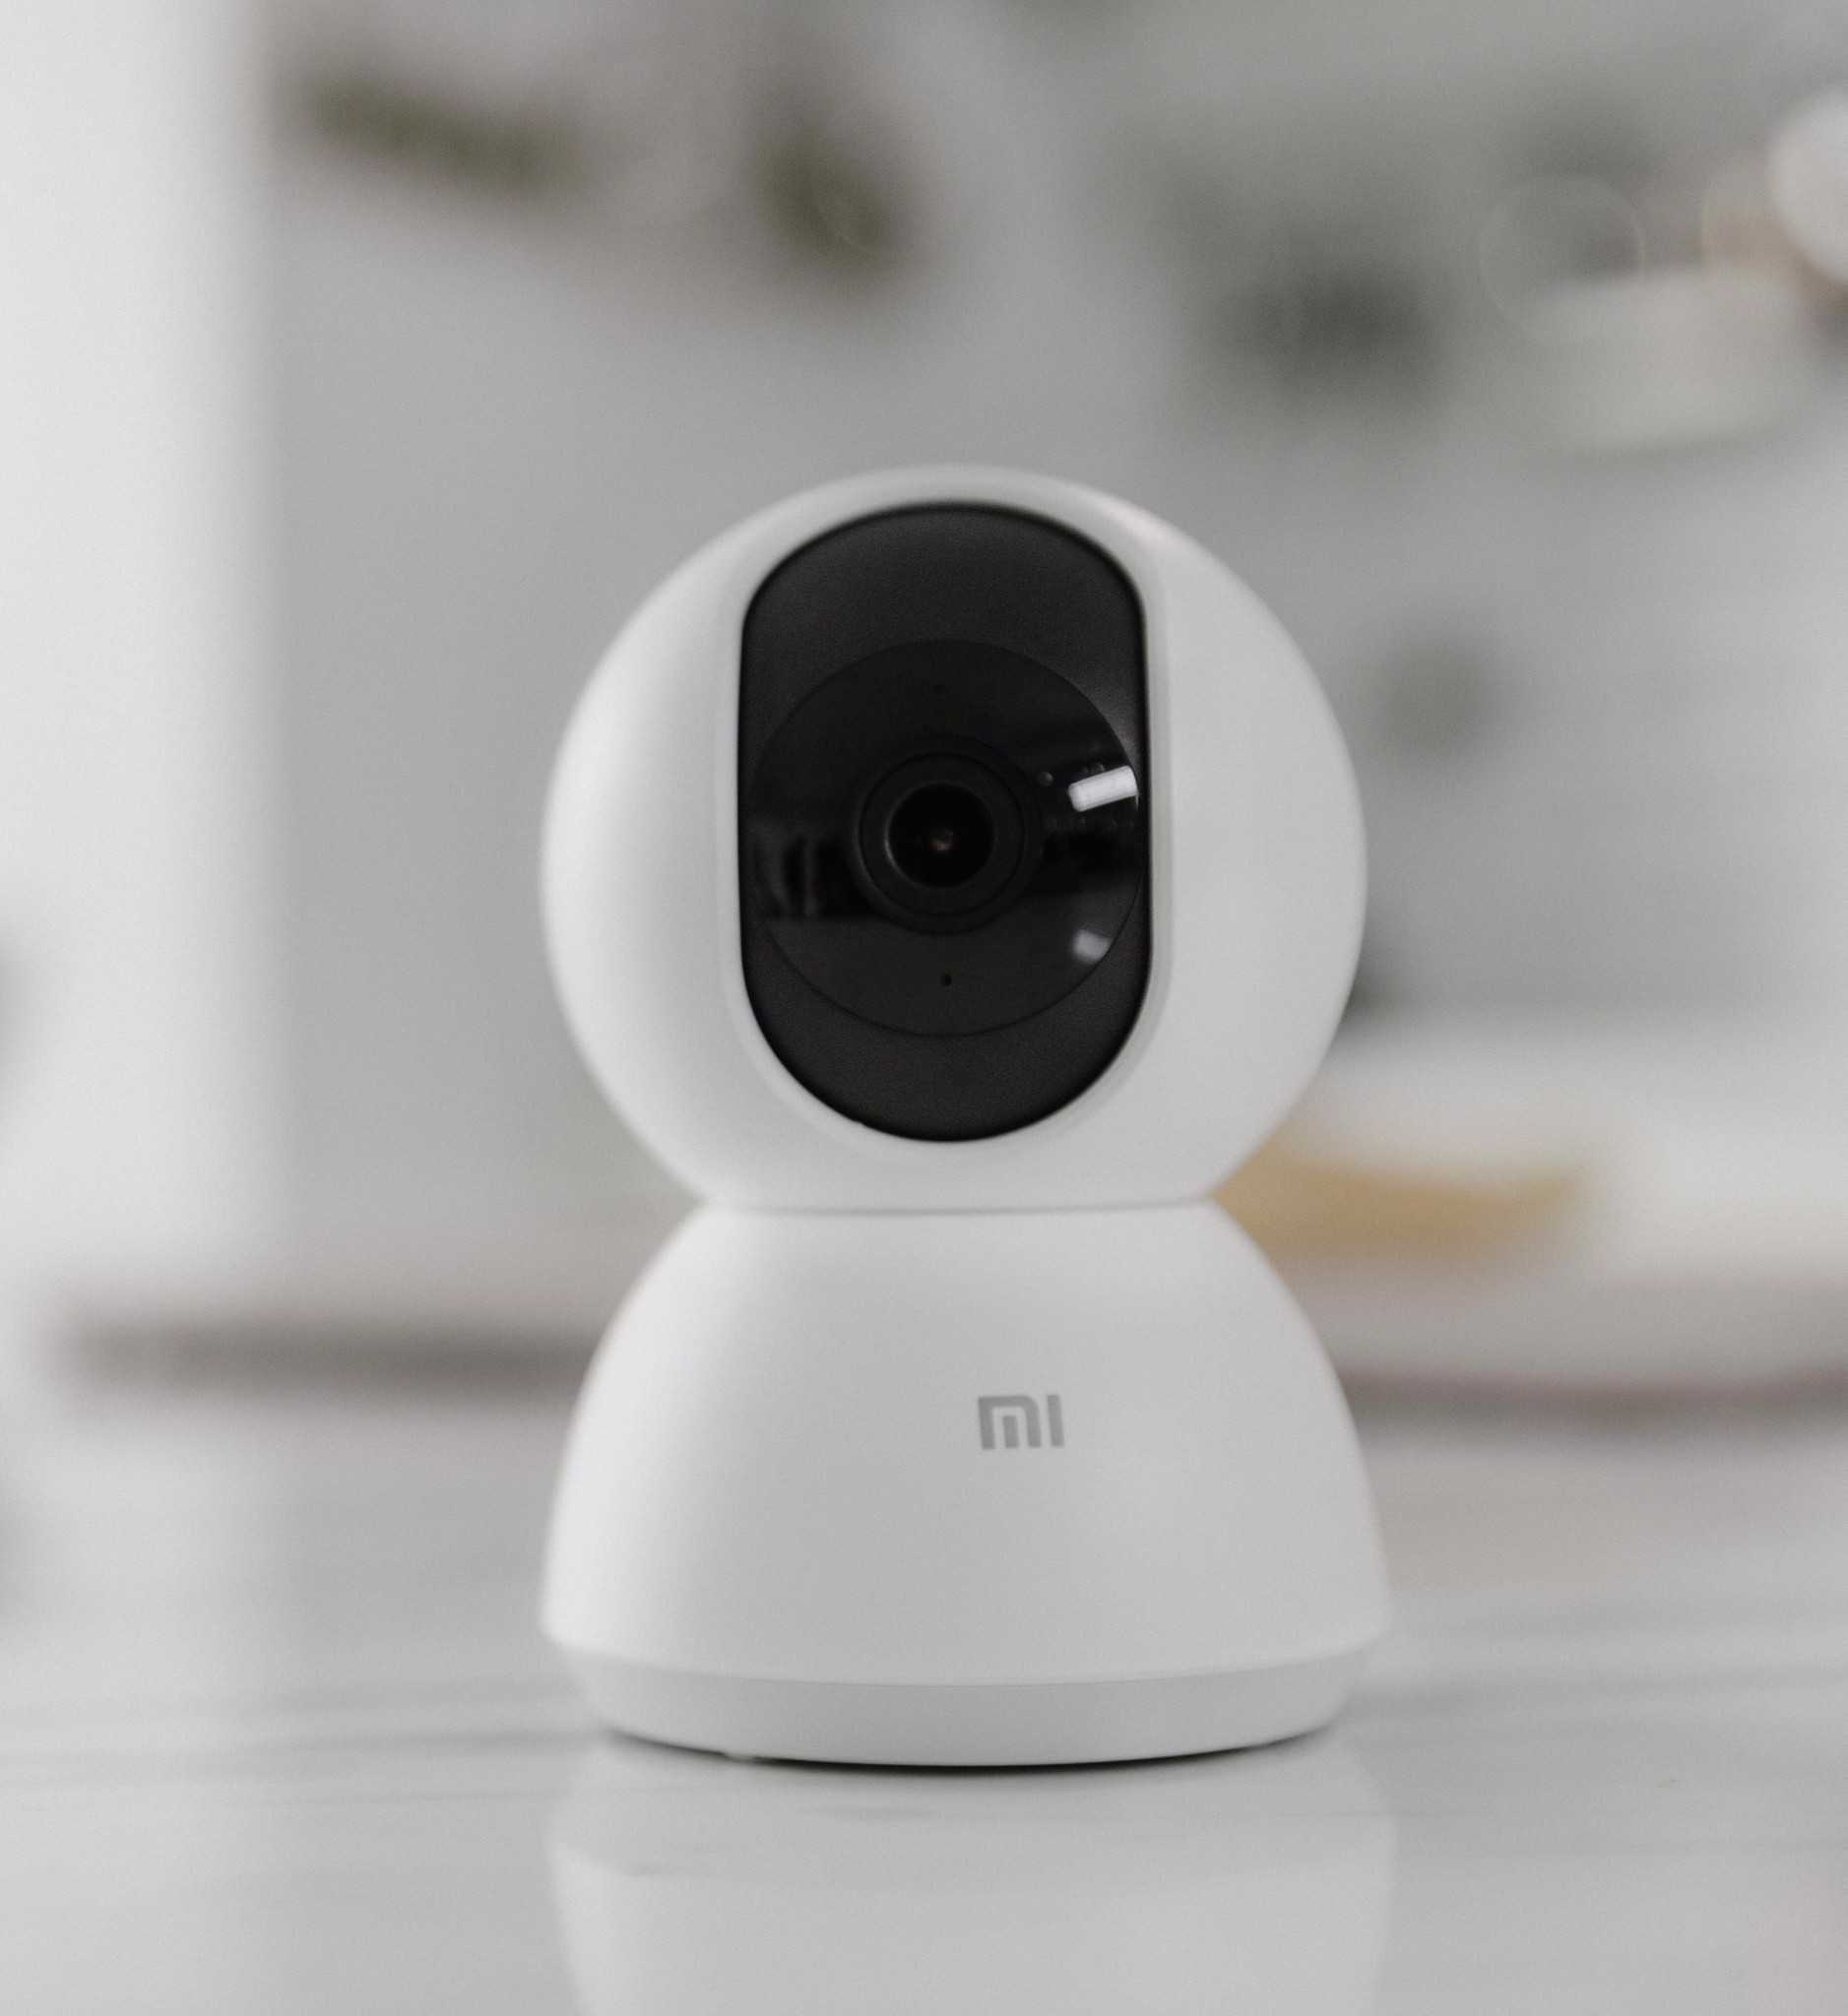 Camera Mi Home Security Camera 360 - 1080p